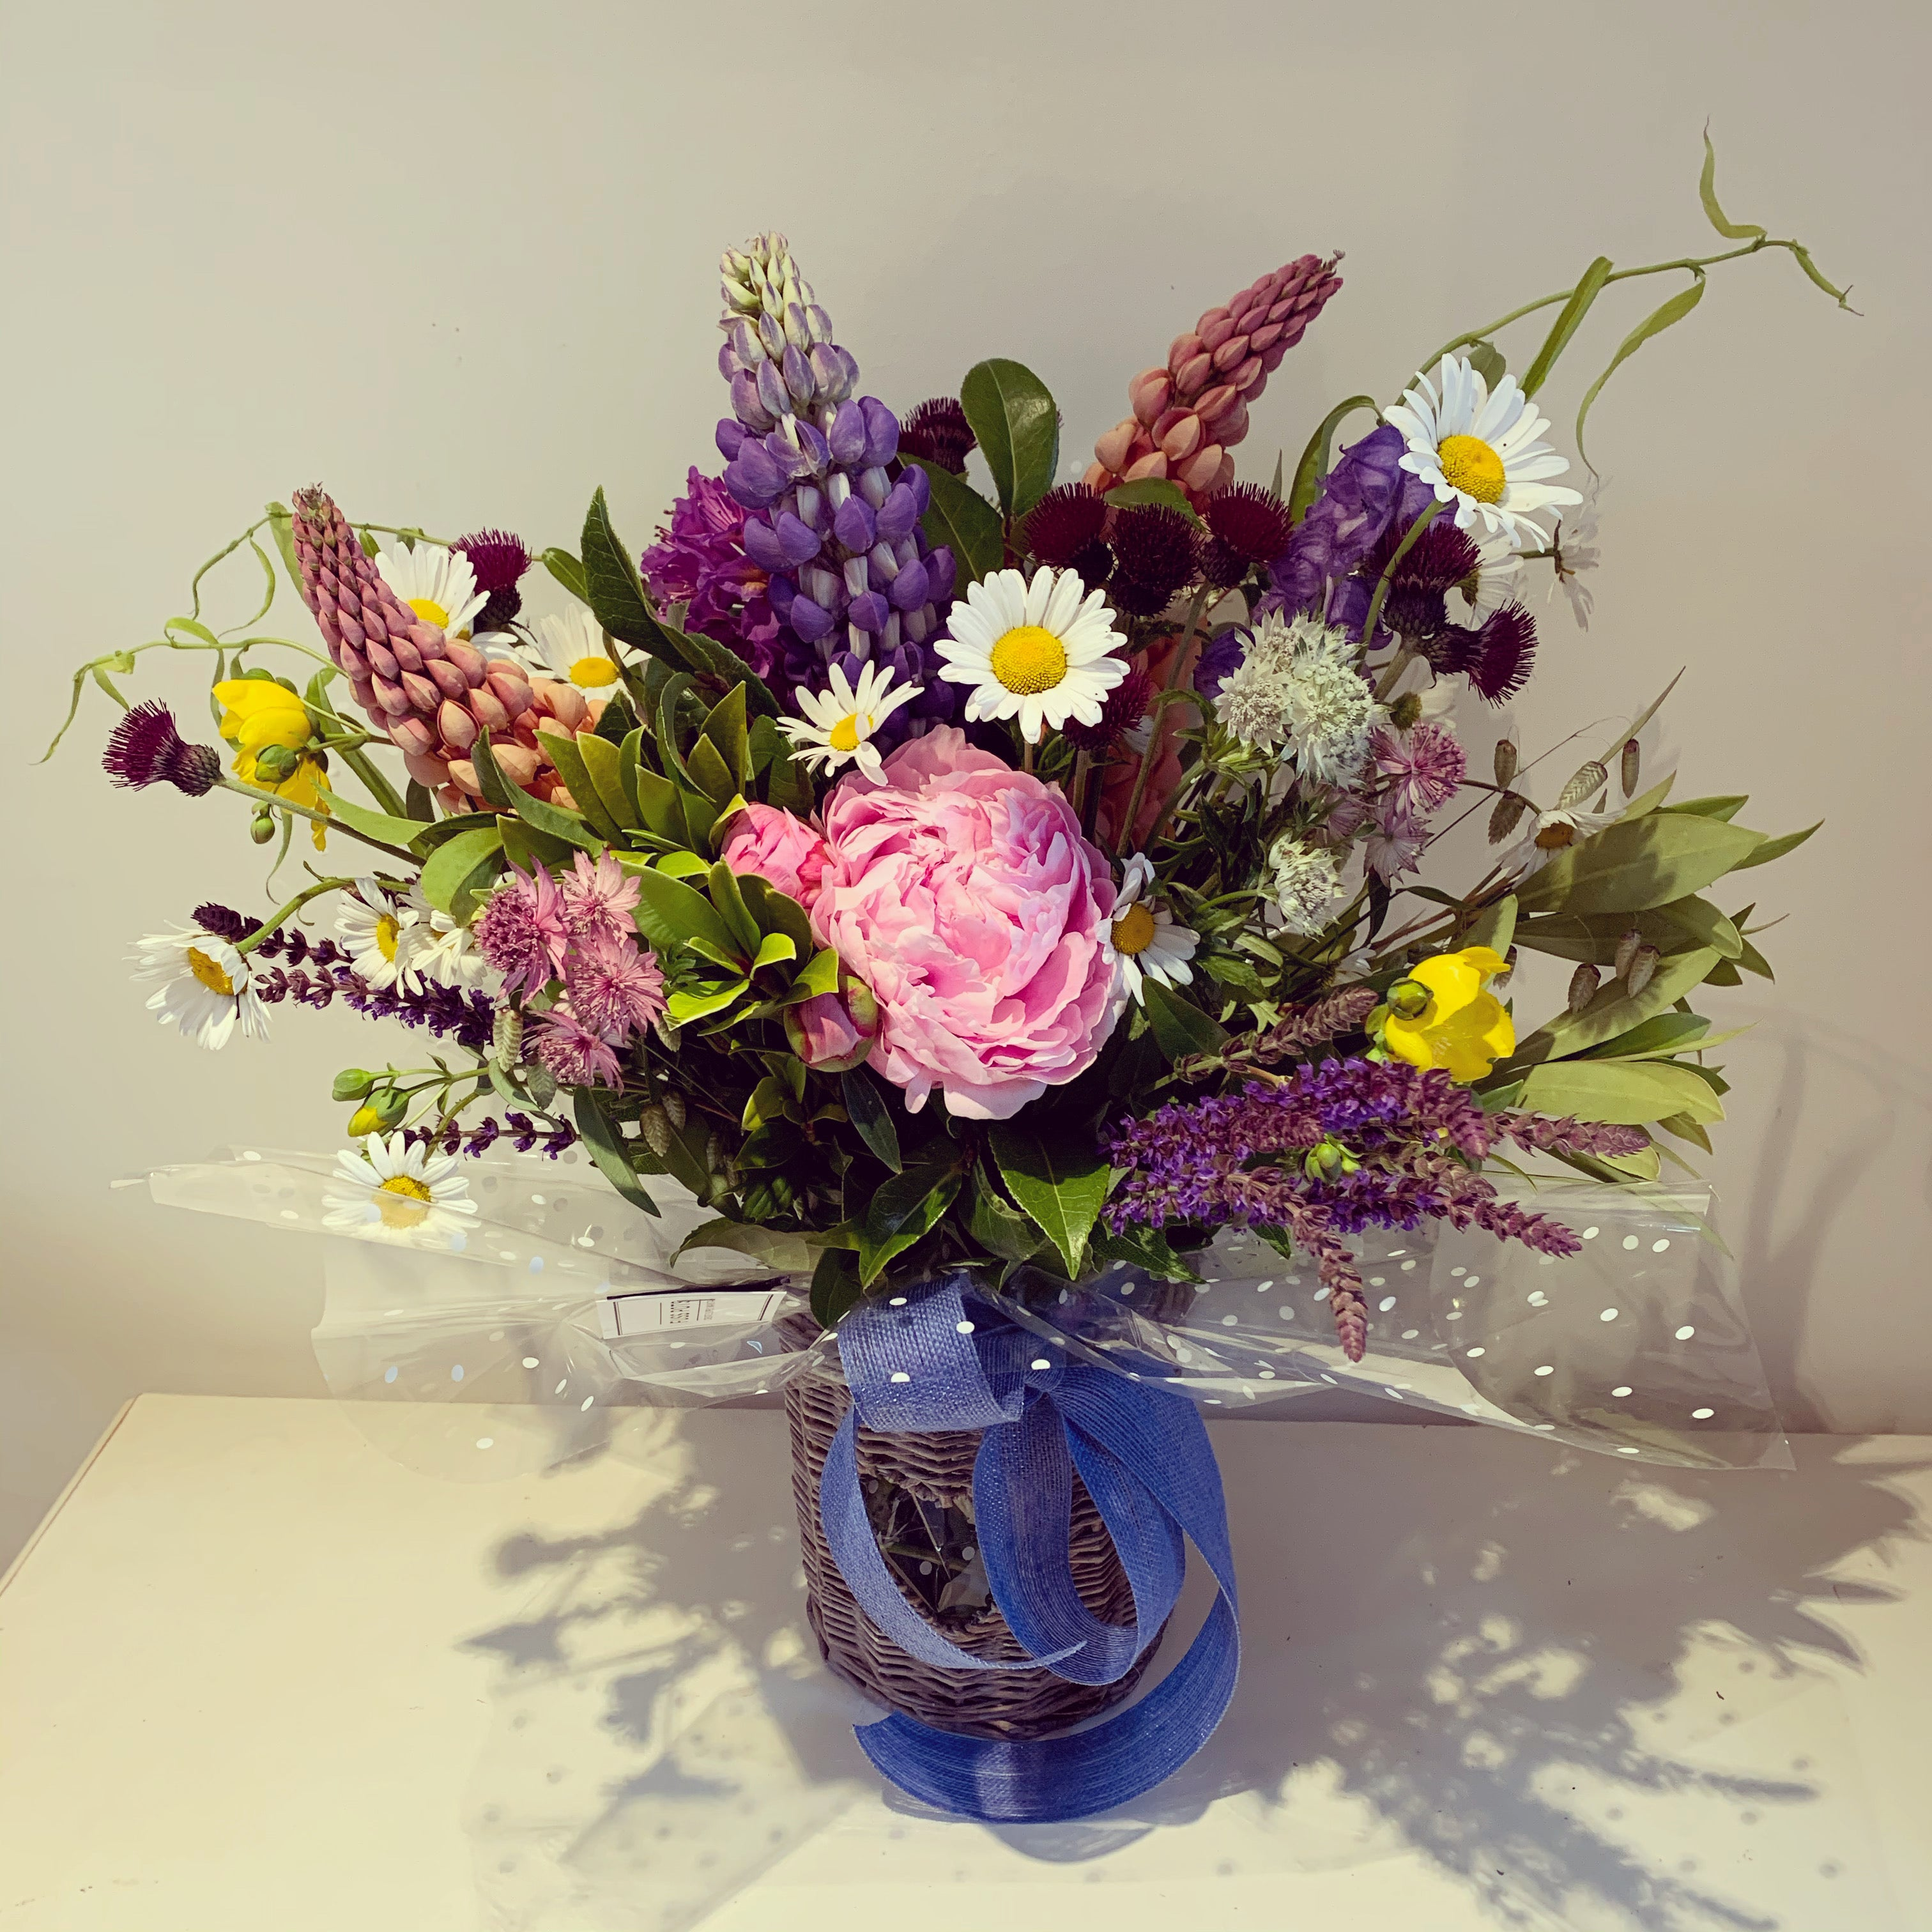 Seasonal Gift Bouquet including container